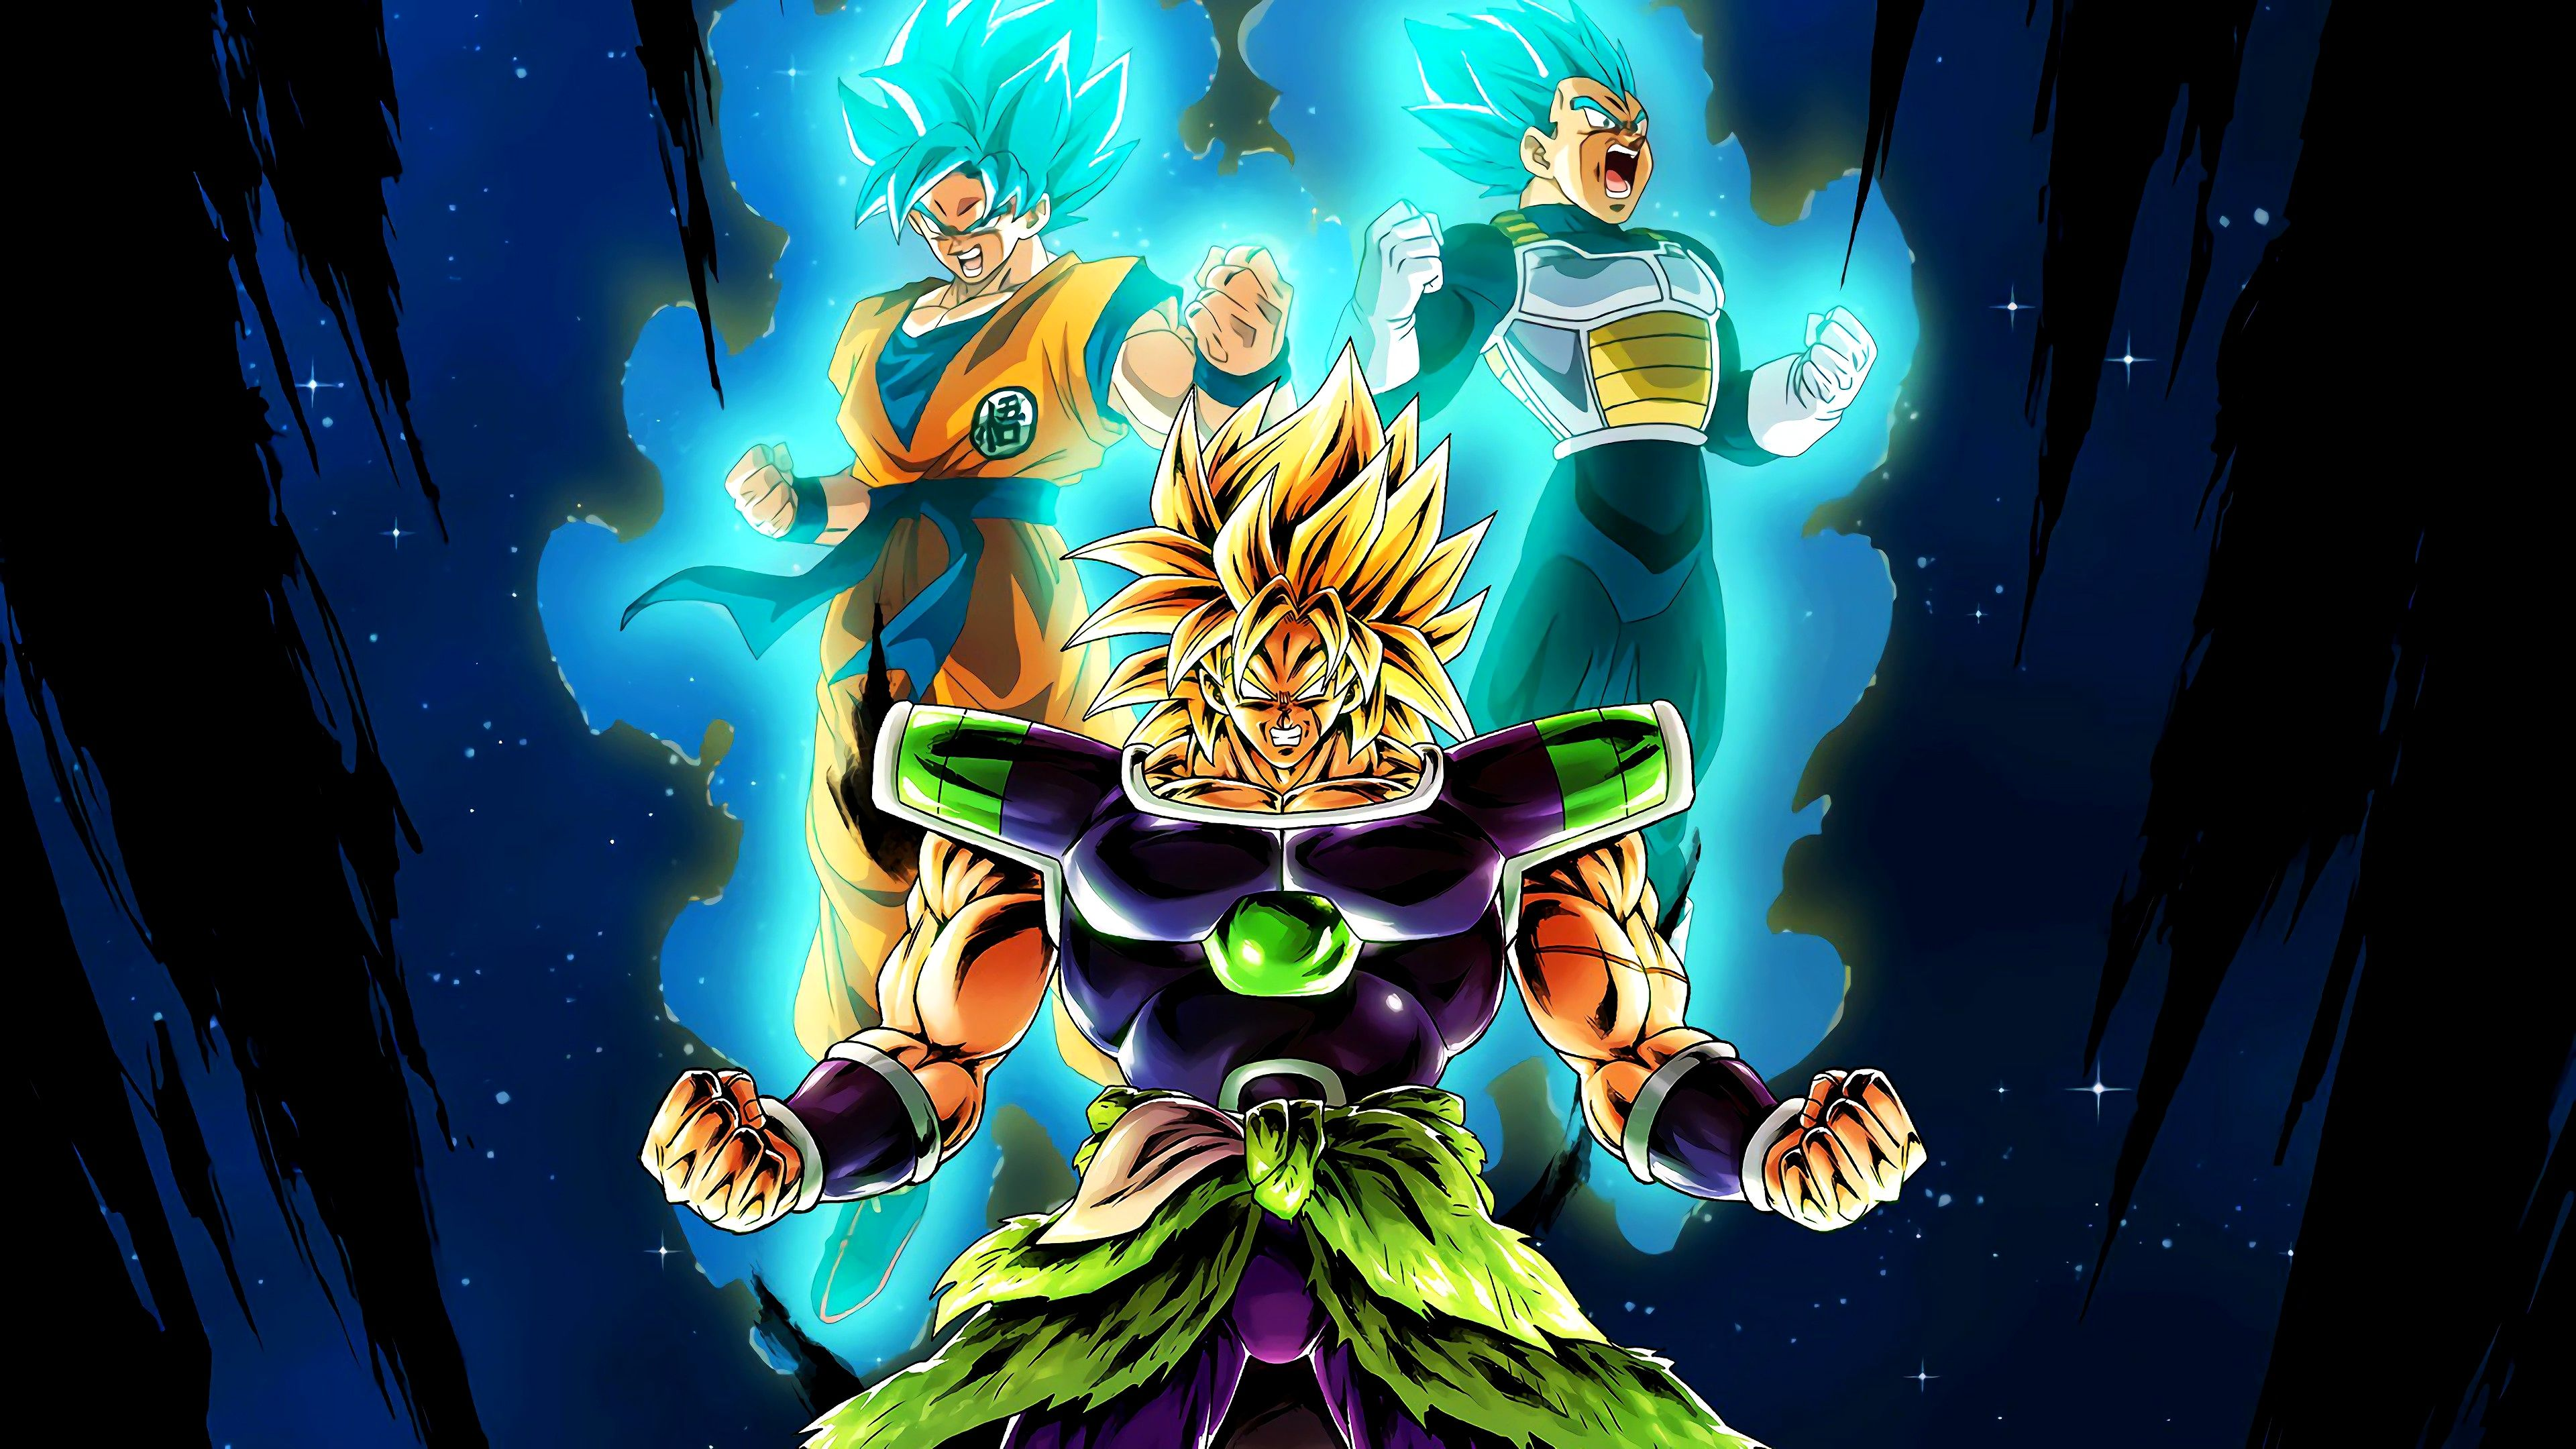 Broly Wallpaper 4k Iphone Ideas In 2020 Dragon Ball Wallpapers Dragon Ball Super Wallpapers Dragon Ball Super